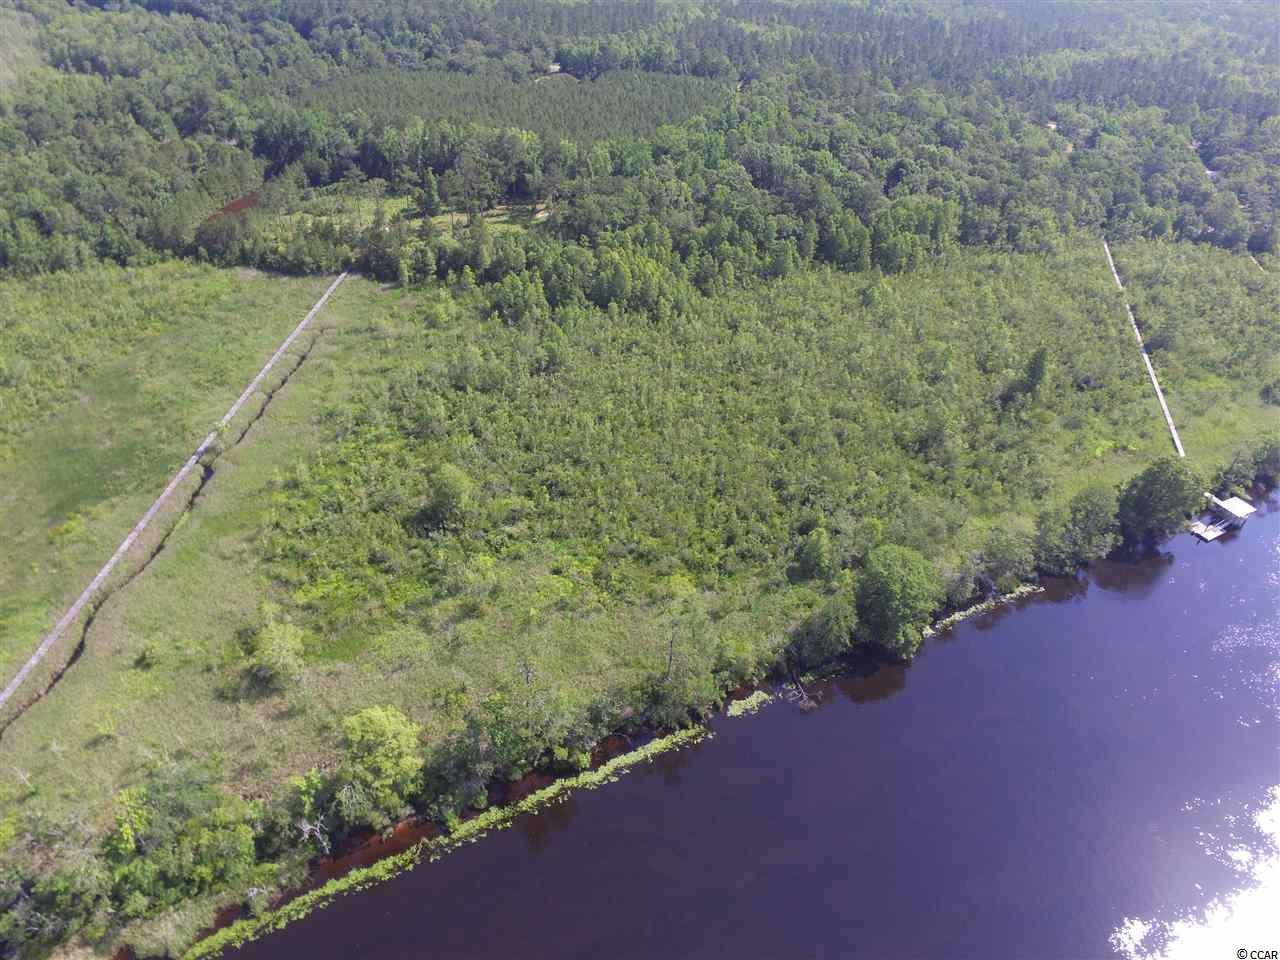 Welcome to your plantation home site. Many options abound as you enter this oak filled property. With more than nine acres of uplands and 1,000-feet of frontage on the Black River, you have many development opportunities.